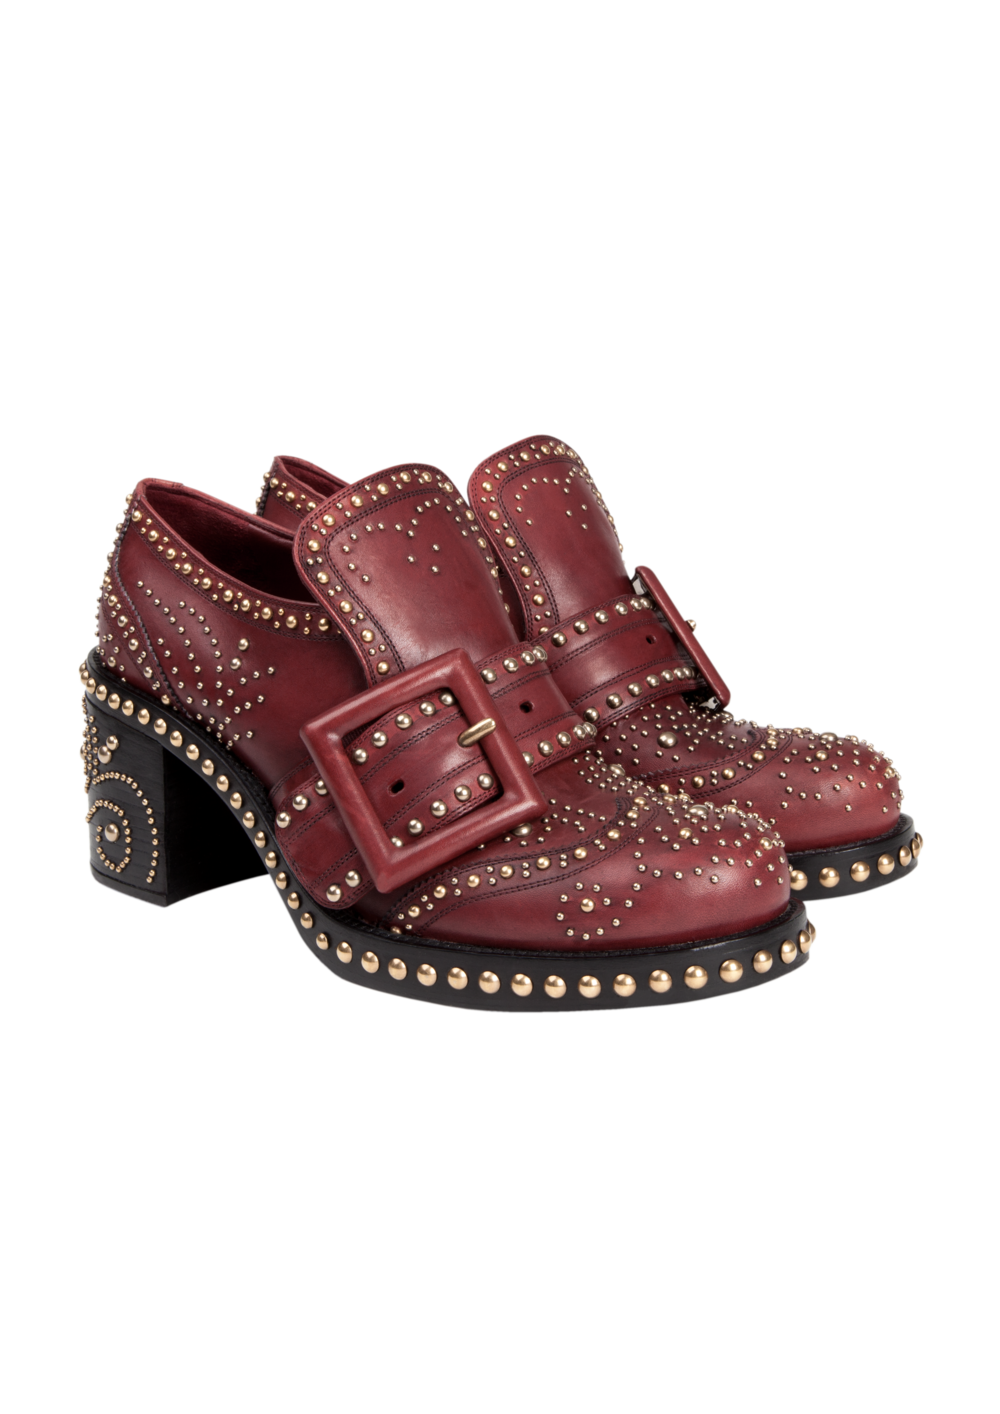 miumiu-shoes-redstud-15.png